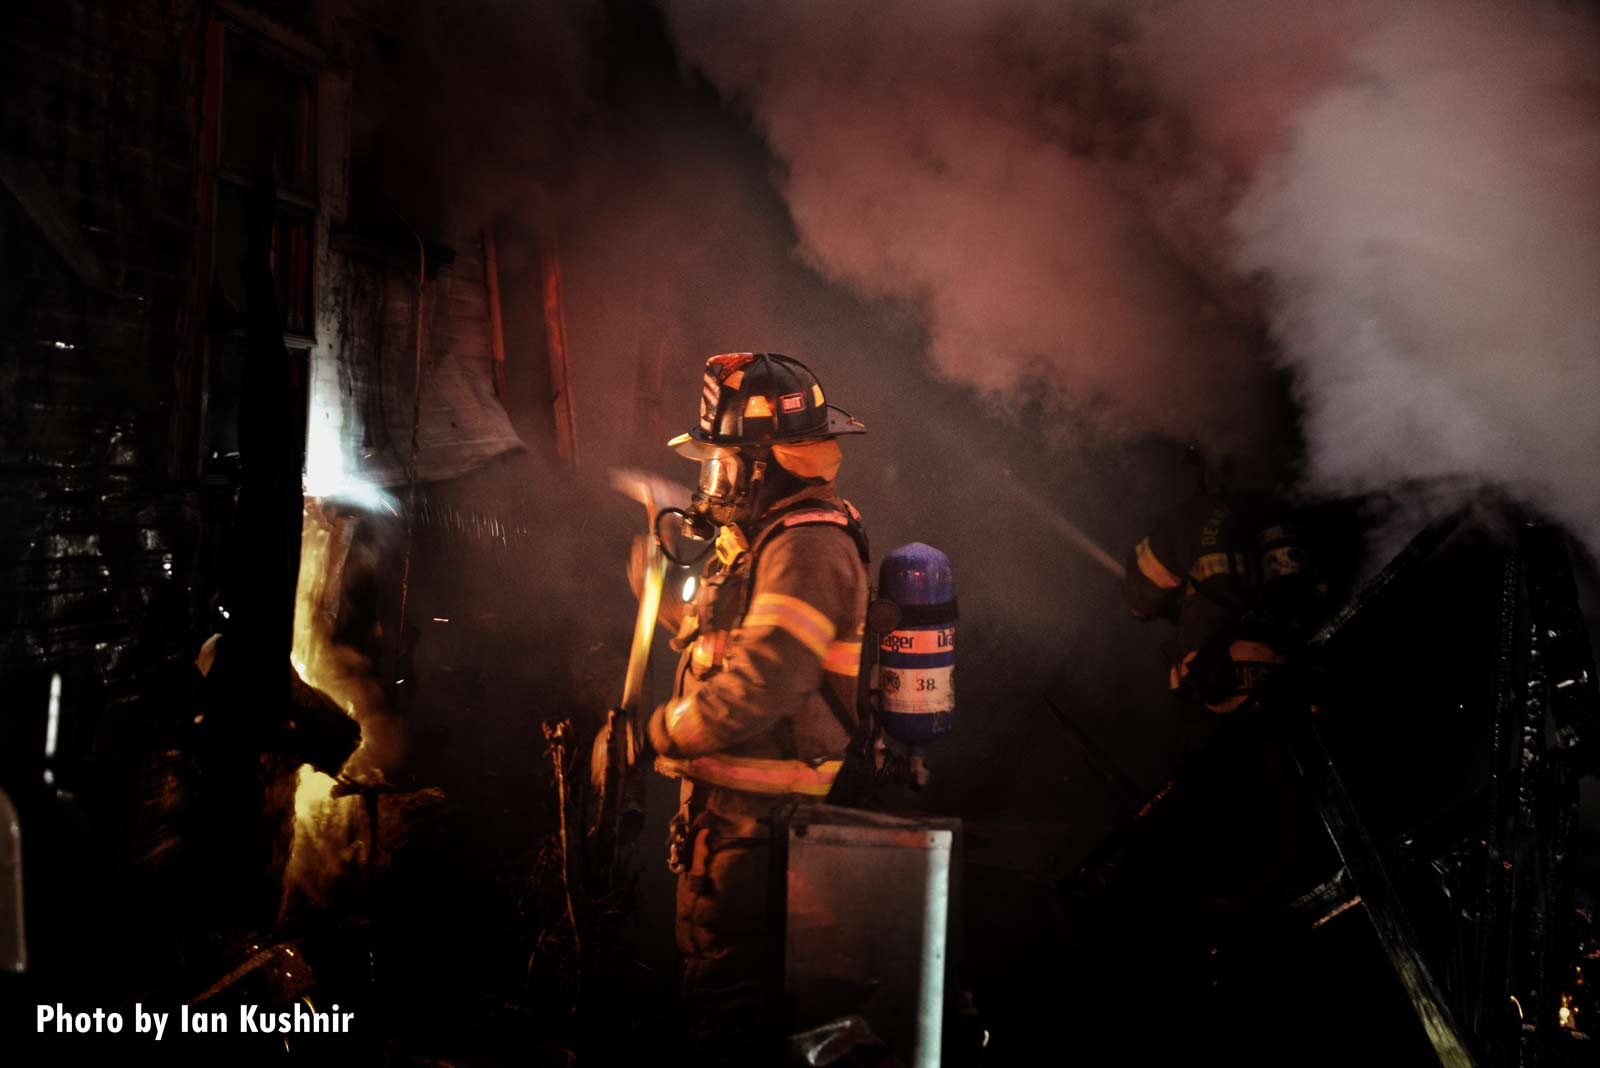 A firefighter with an ax working on the fireground